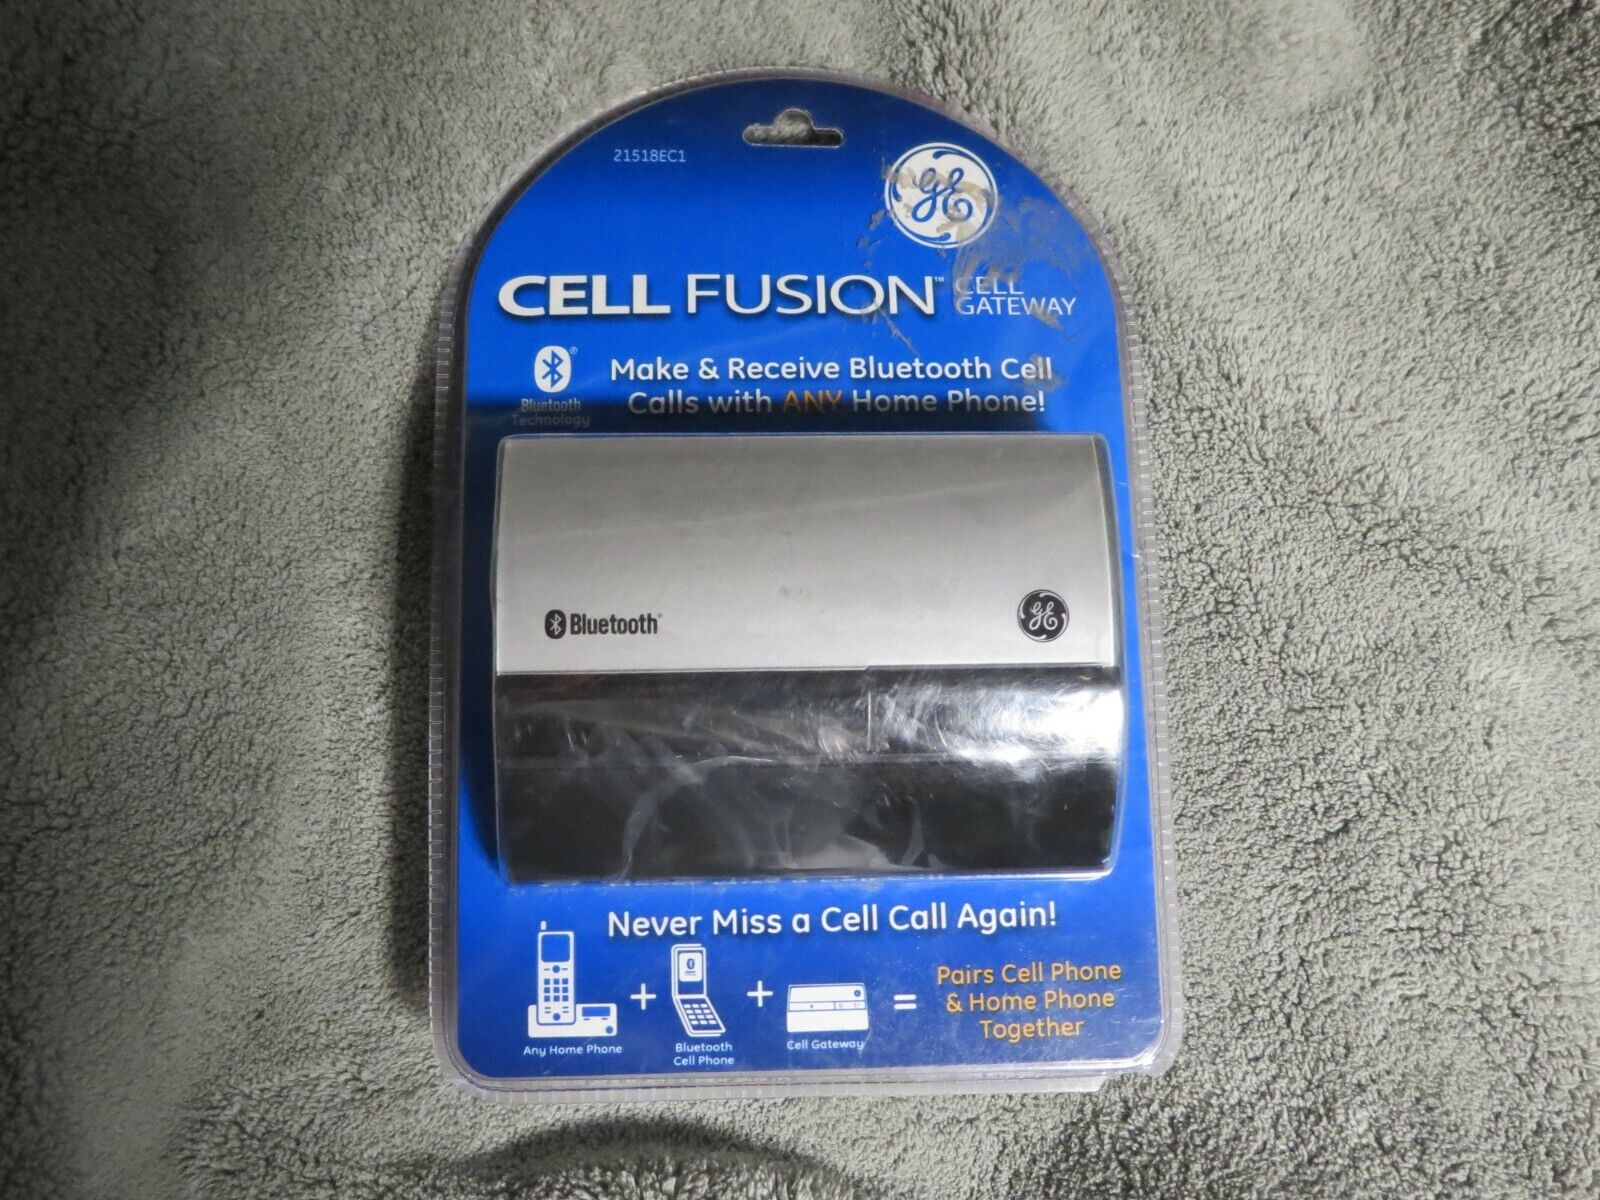 GE  21518EC1 Dect 6.0 Cell Fusion Bluetooth Adjunct